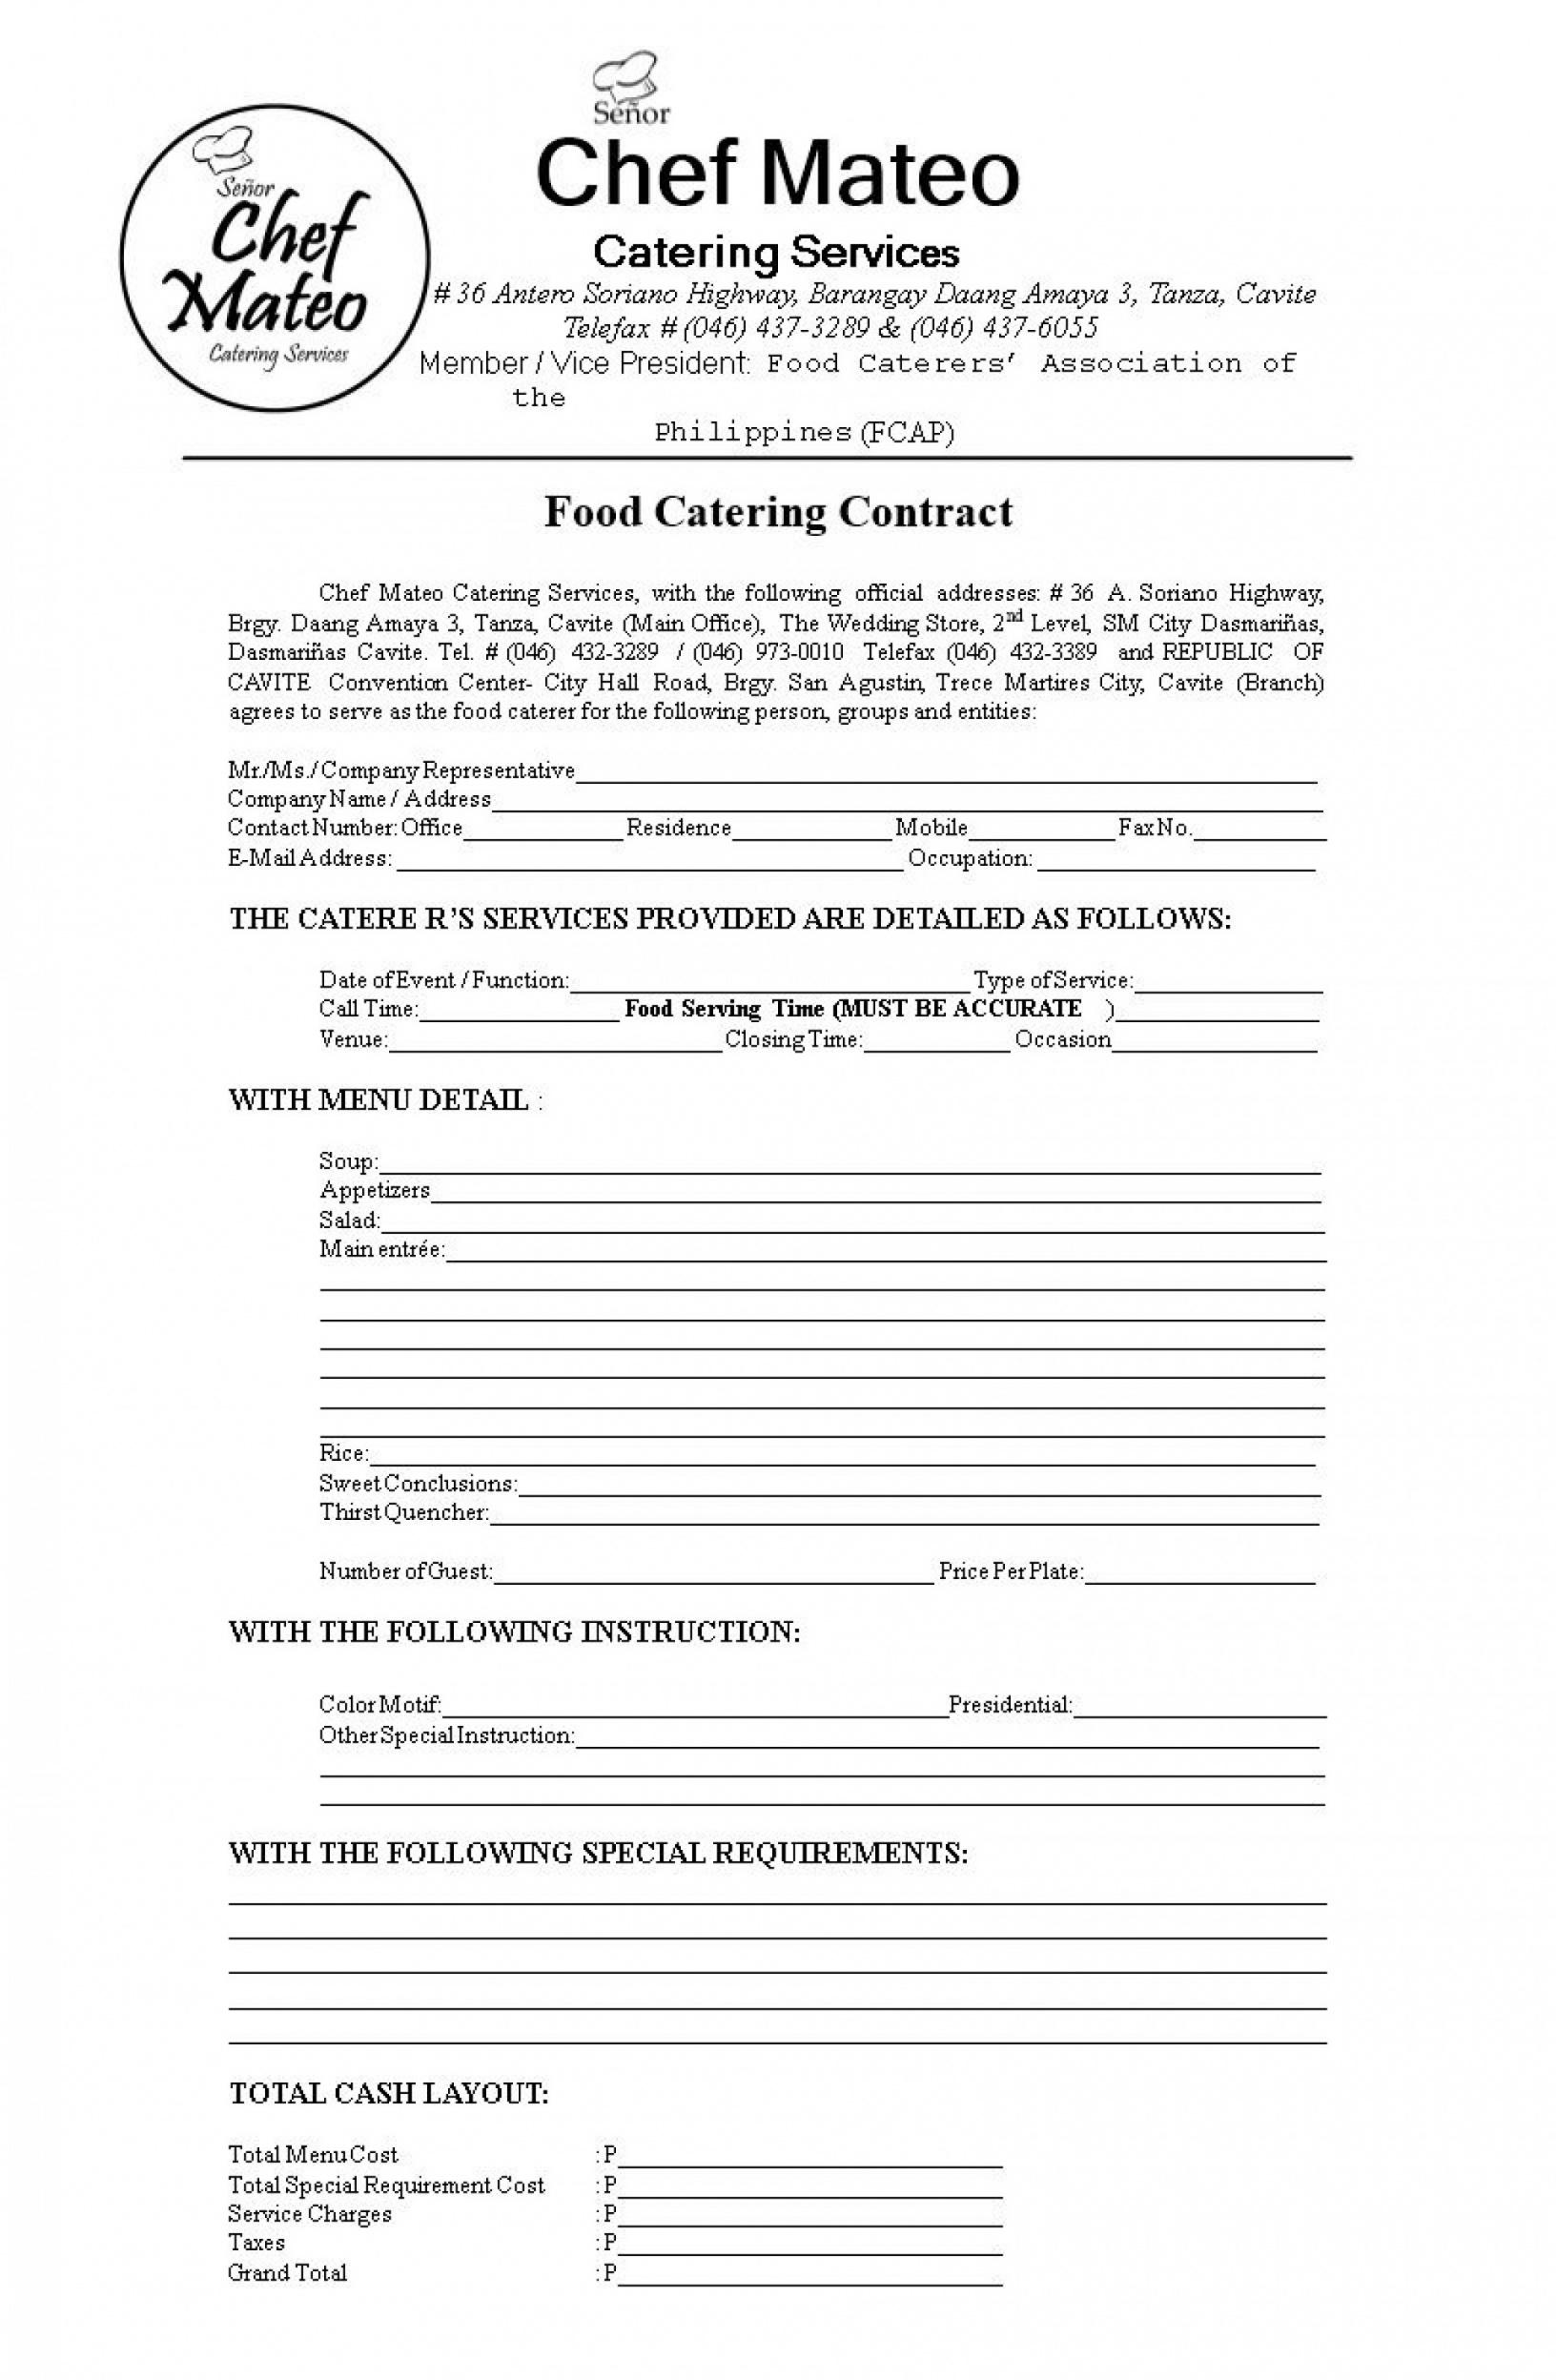 Catering Service Contract Template Word